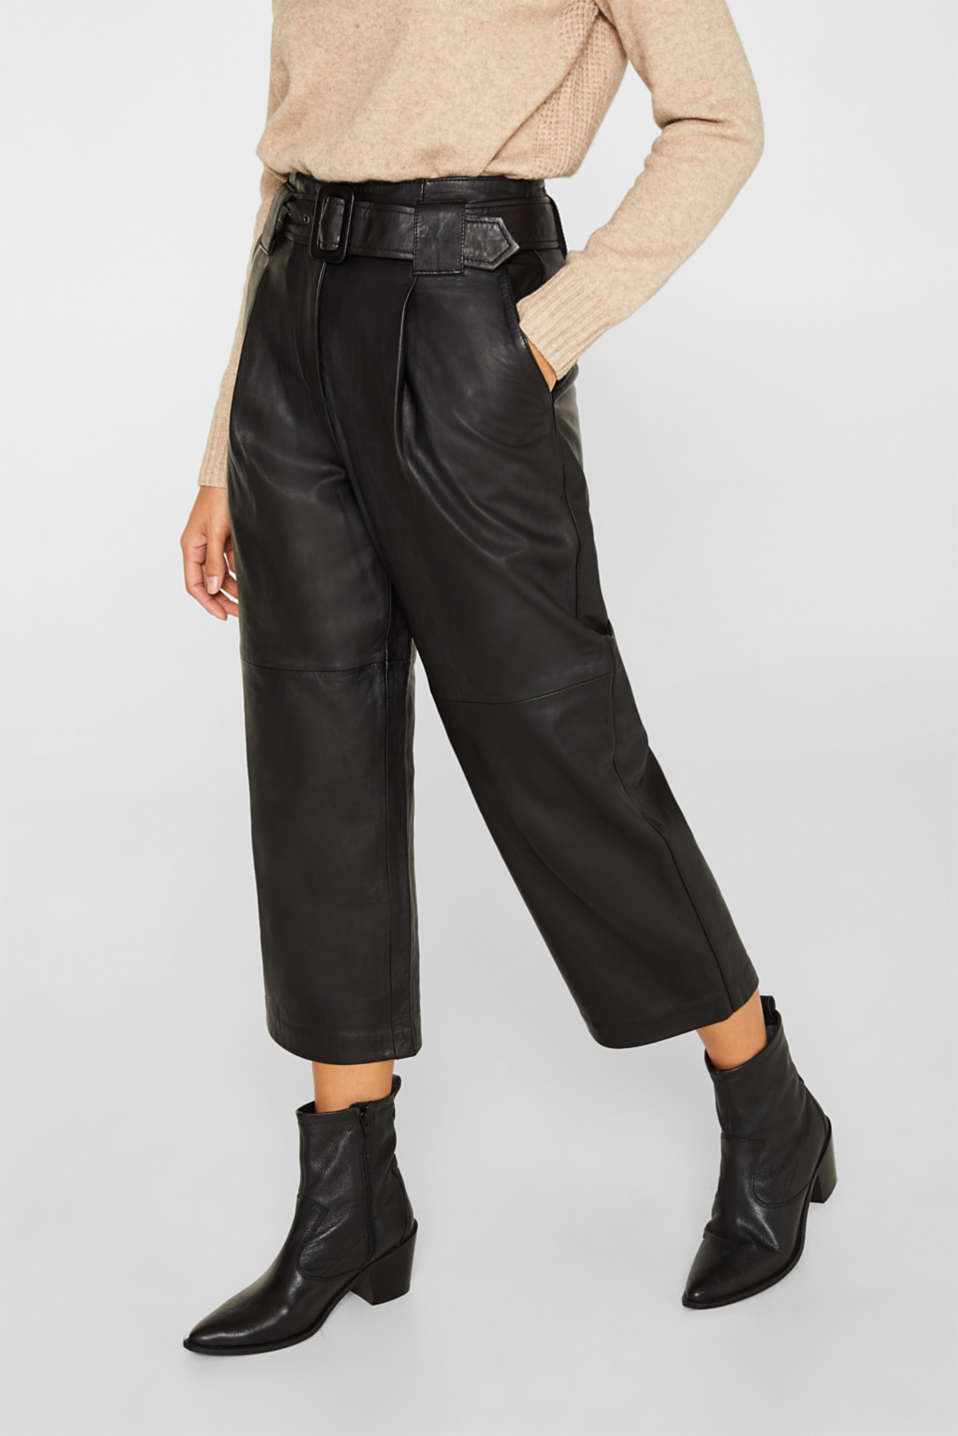 Esprit - Made of leather: Culottes with wide belt